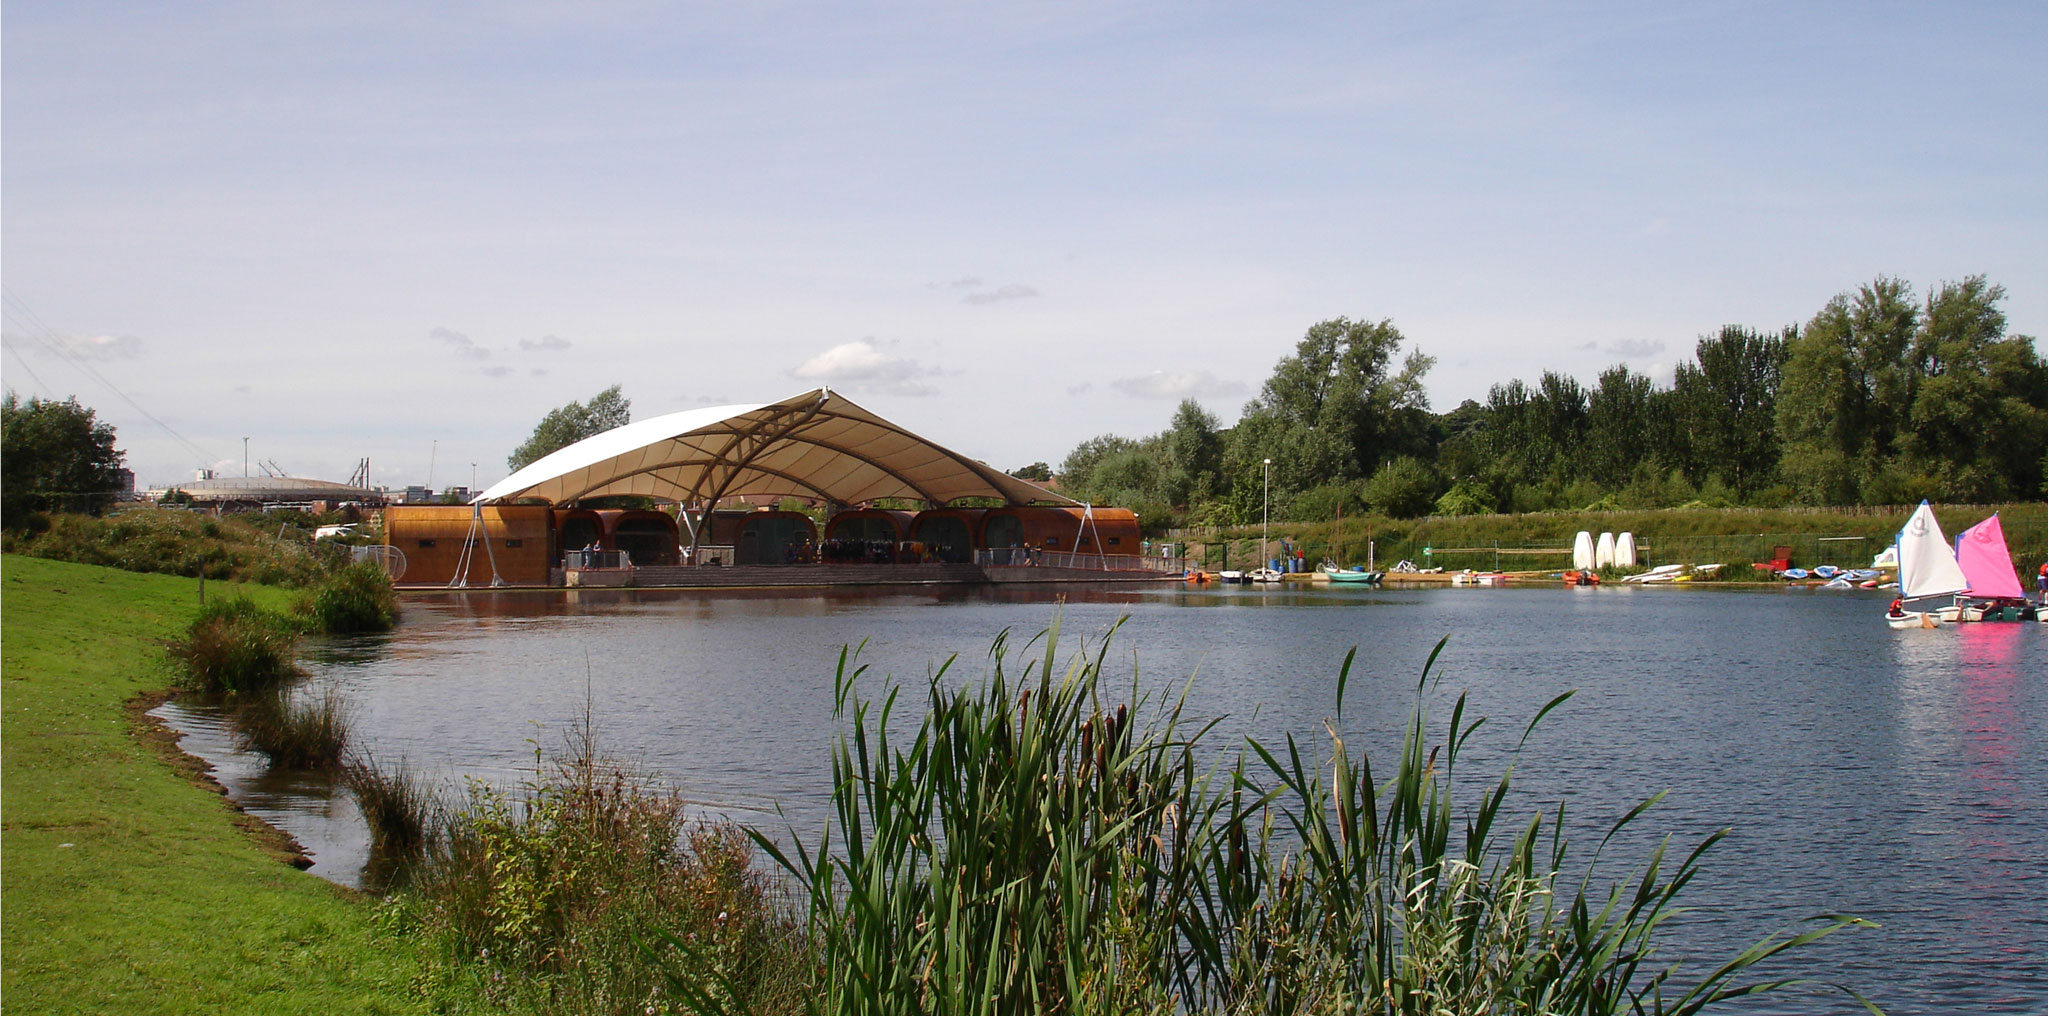 Water Activities Centre for Whitlingham County Park, Norfolk, 2005